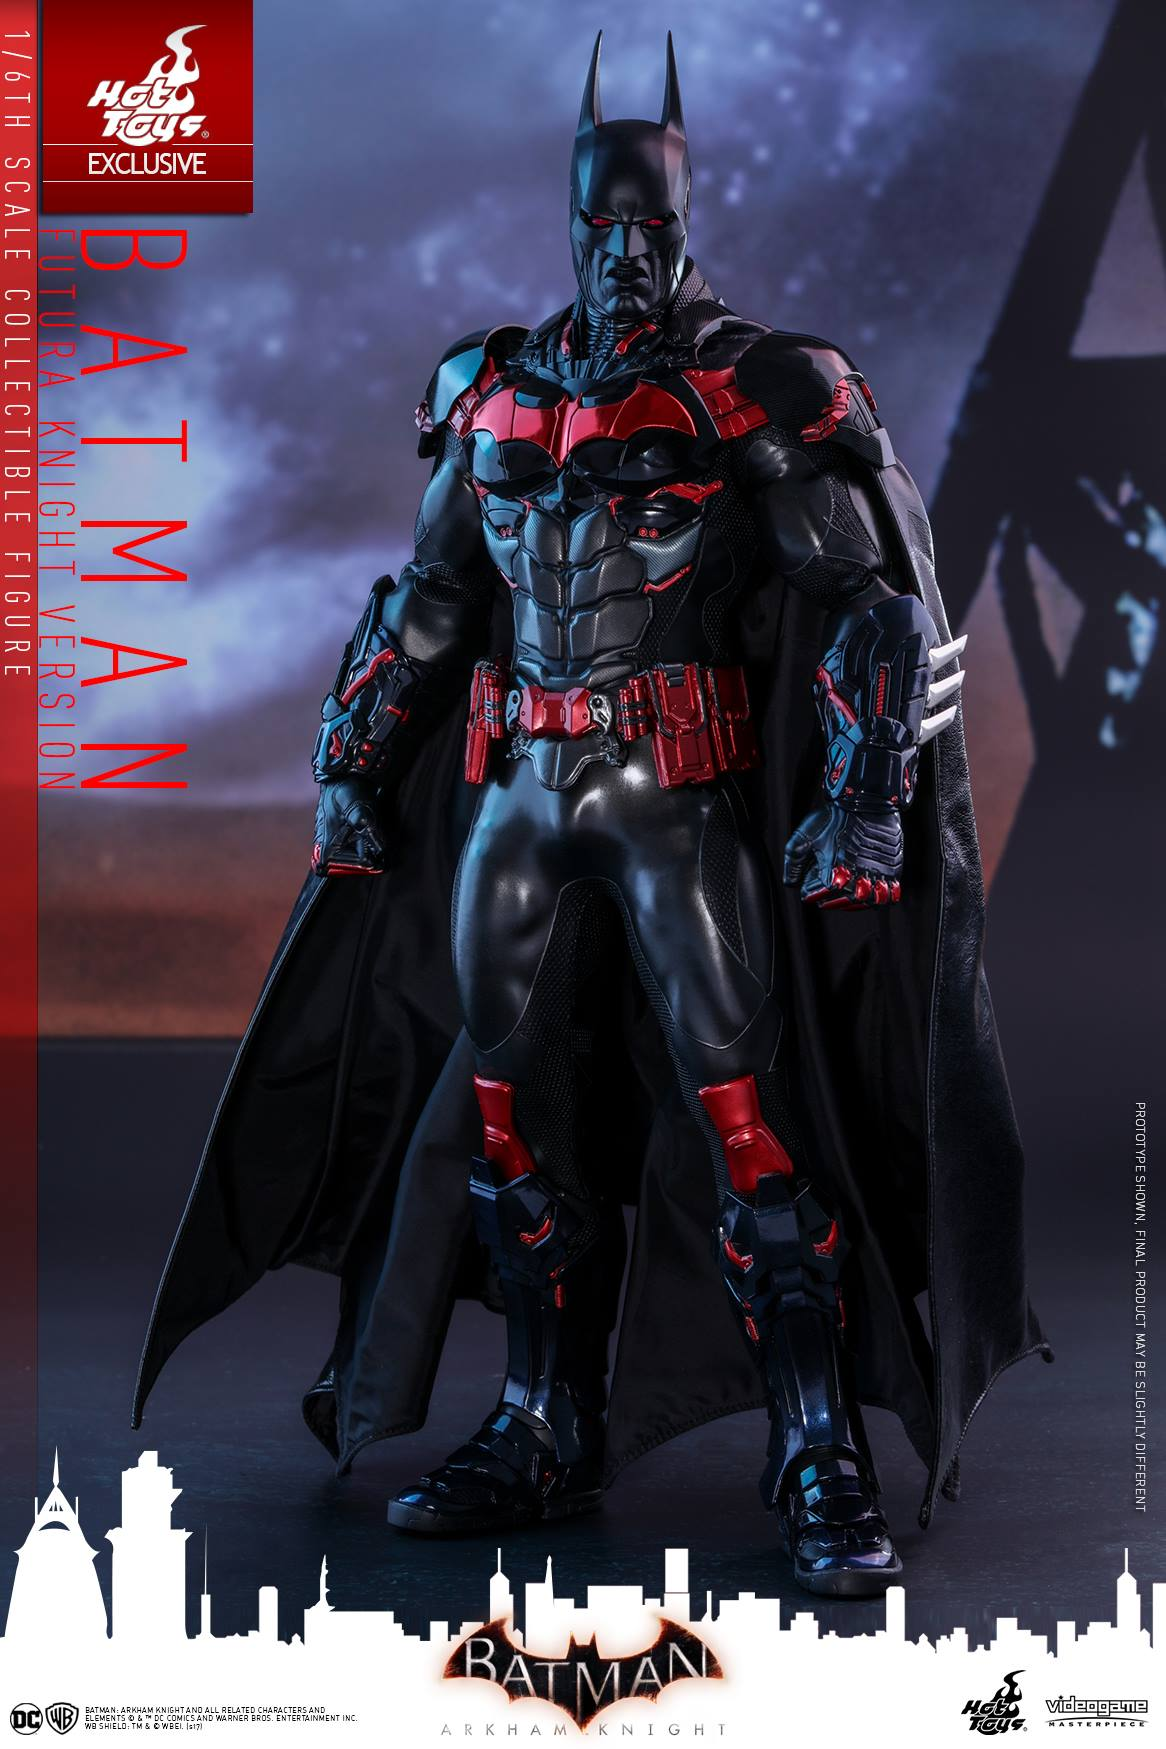 batman arkham knight hot toys batman futura version 1 6. Black Bedroom Furniture Sets. Home Design Ideas